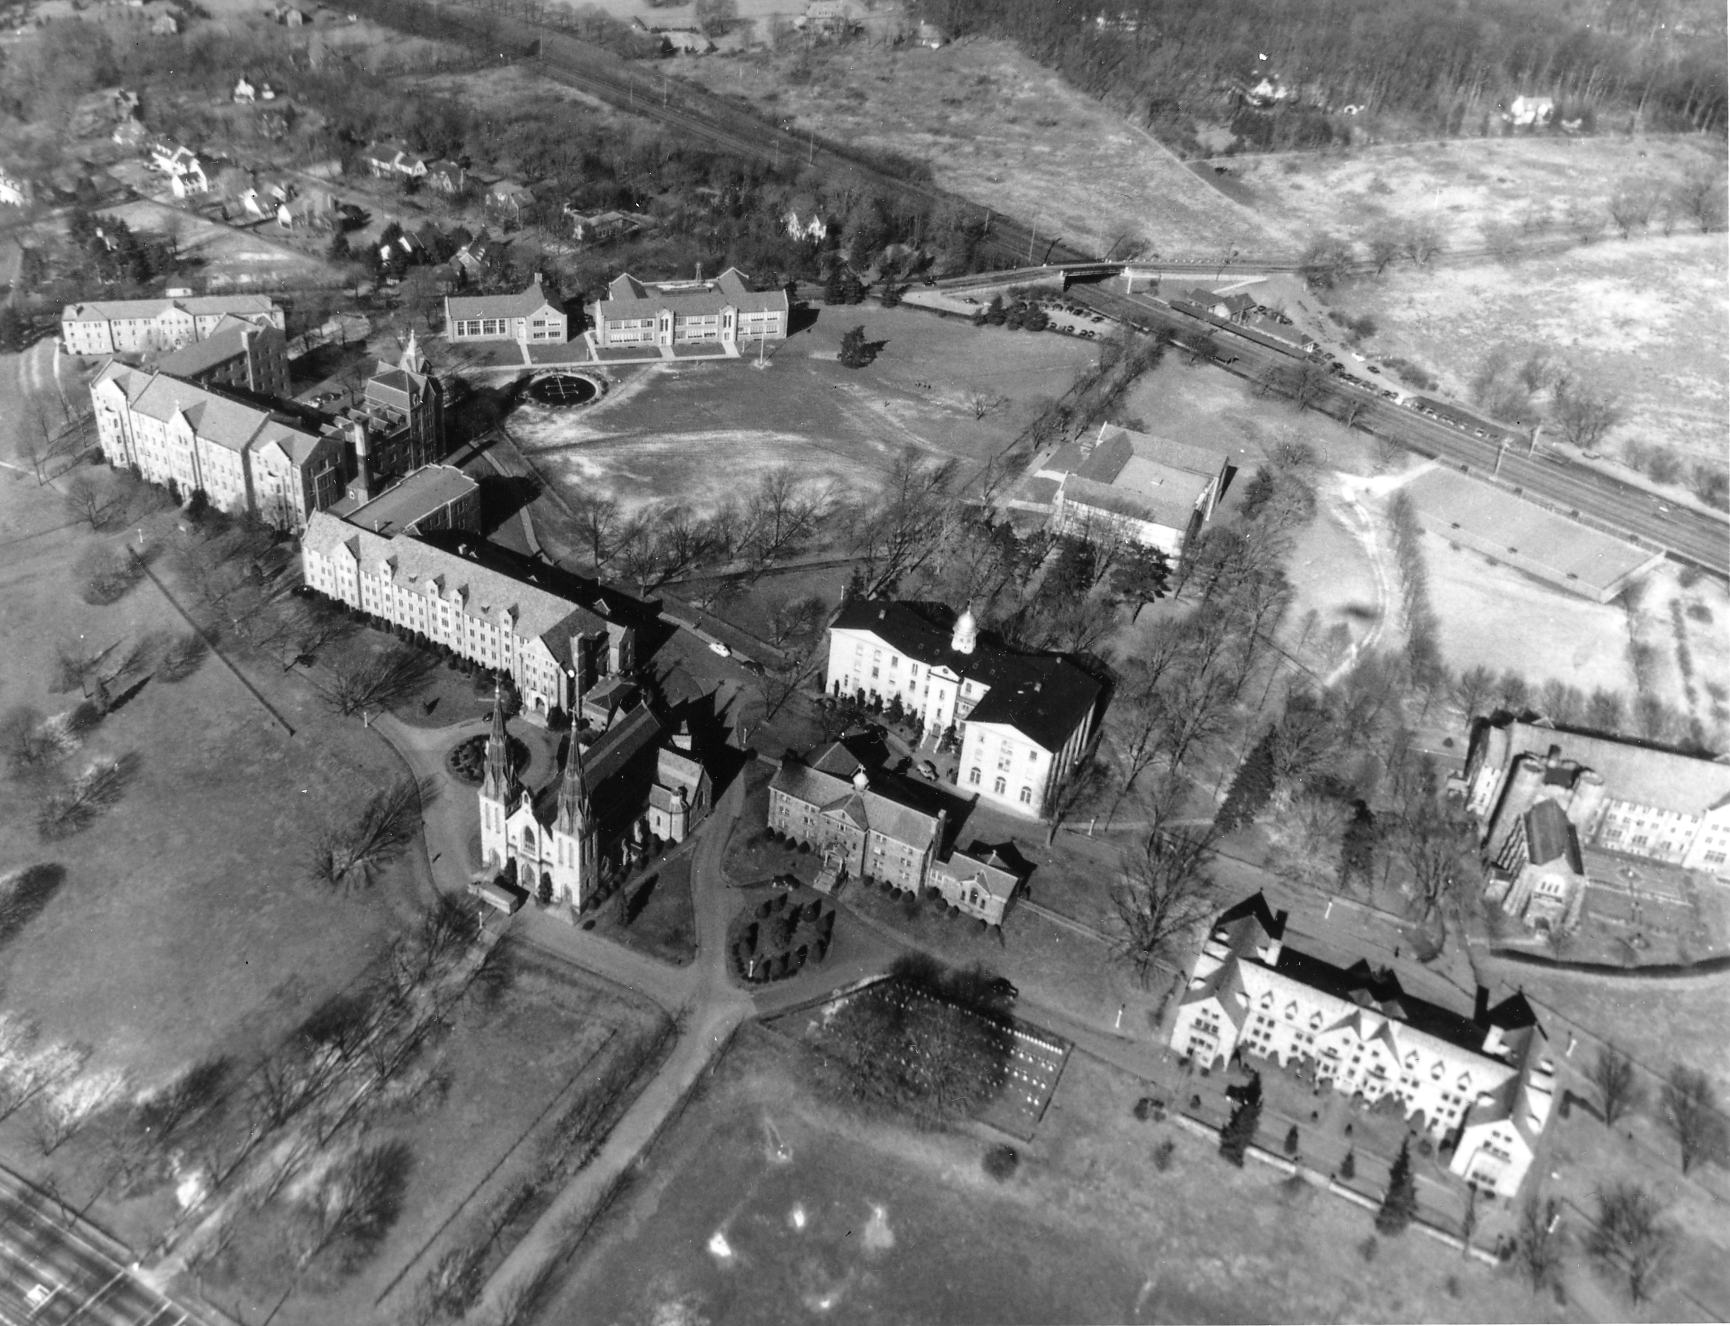 Aerial view of campus, early 1950s.